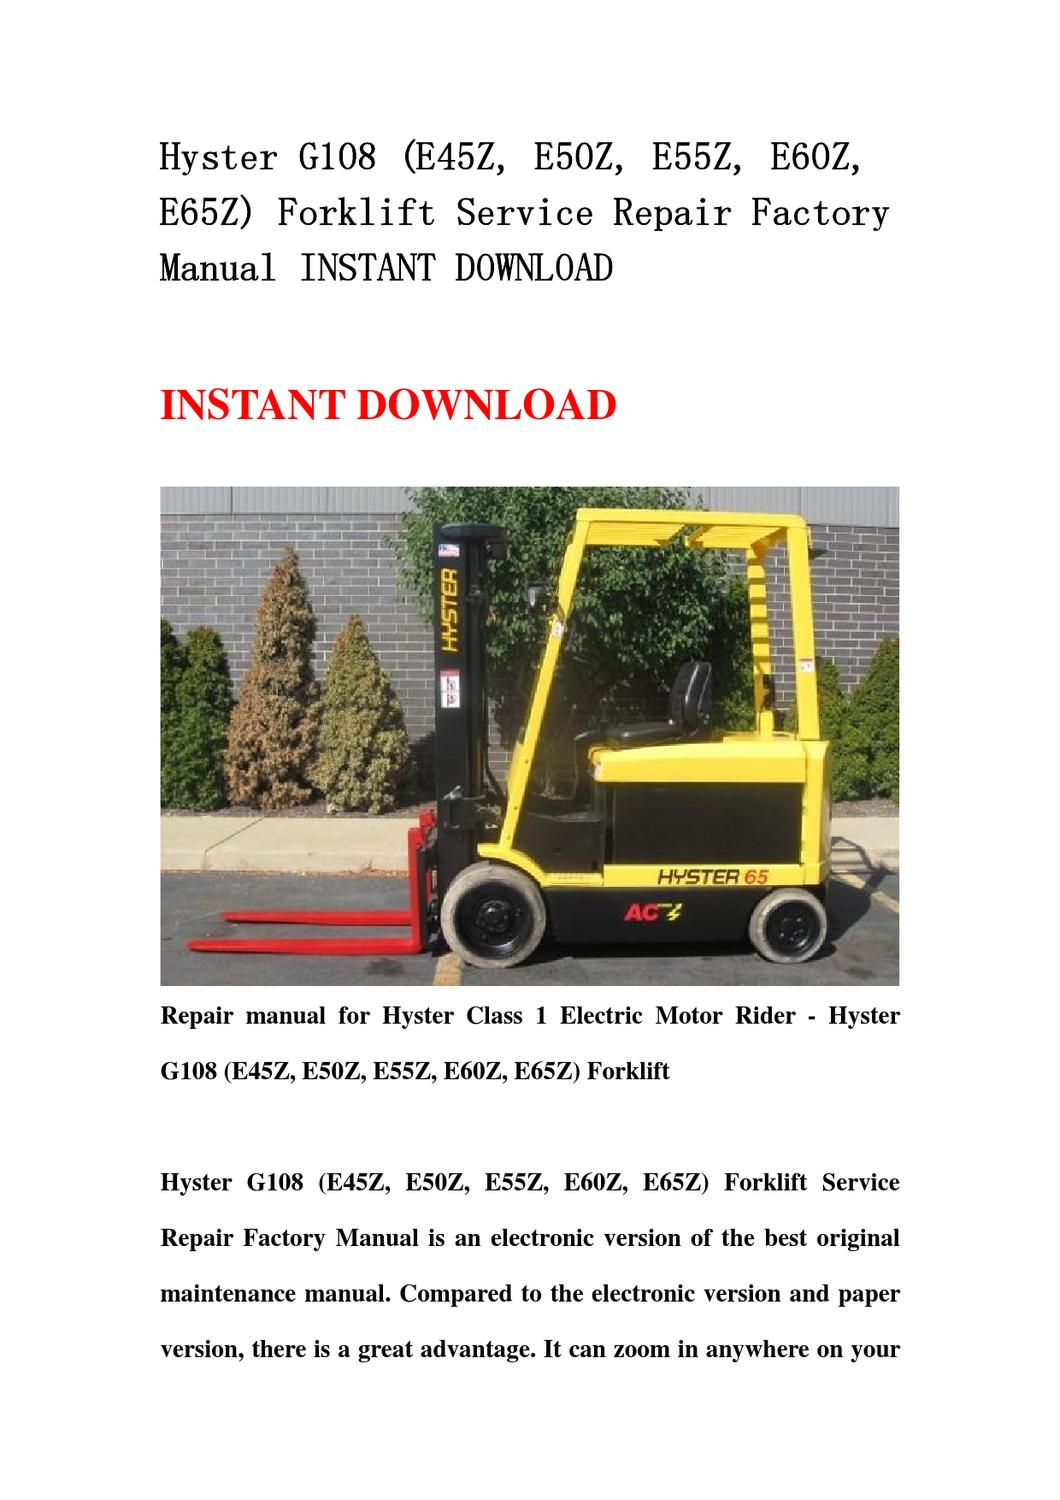 Hyster 65 Forklift Wiring Diagram - Wiring Diagrams ROCK